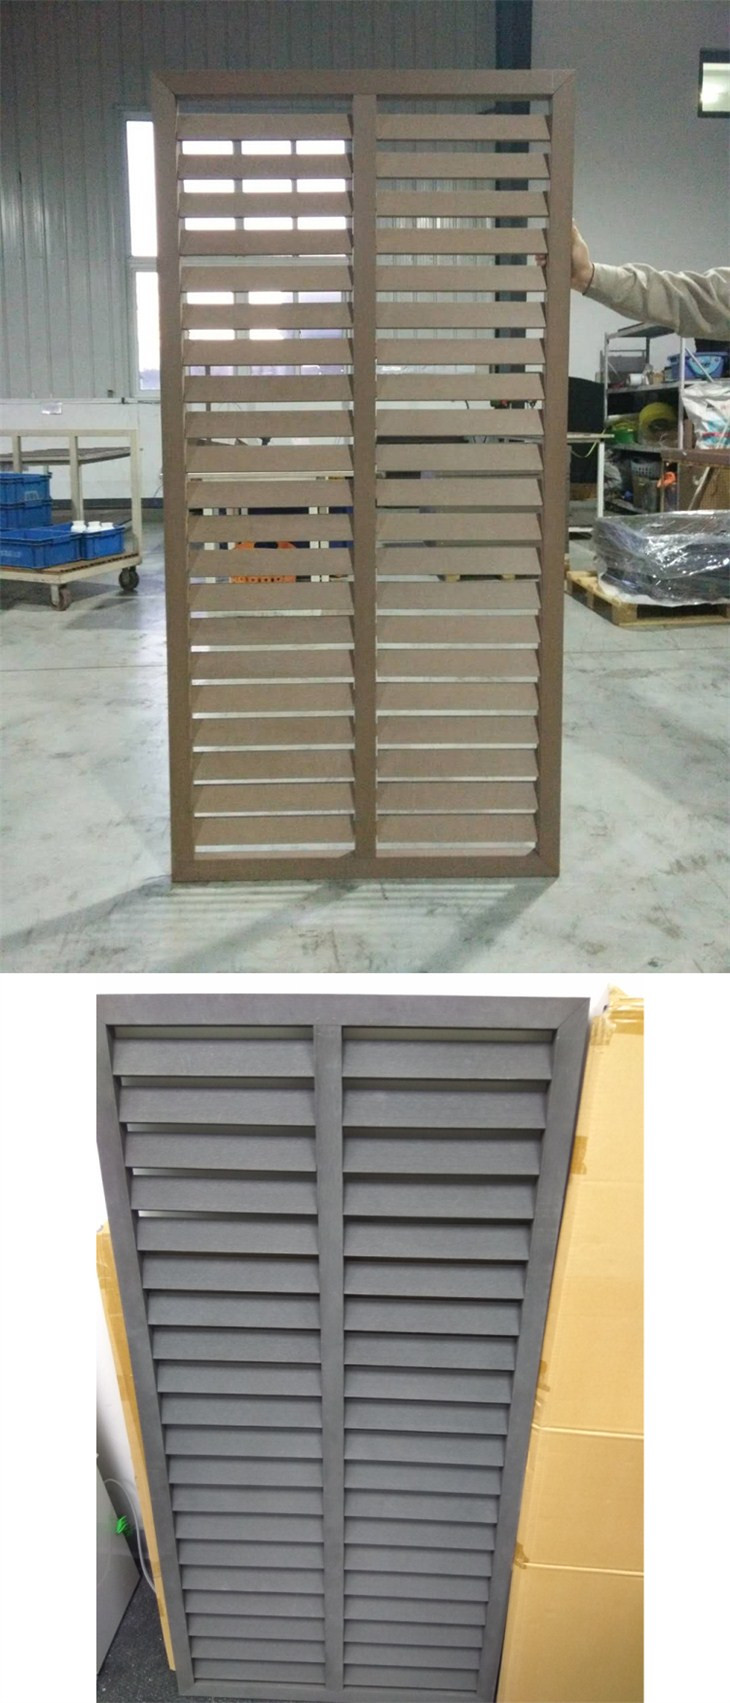 Wpc Decking Wood Plastic Composite Exterior Shutters Louver Vertical Buy Wpc Decking Decking Wood Plastic Composite Exterior Shutters Louver